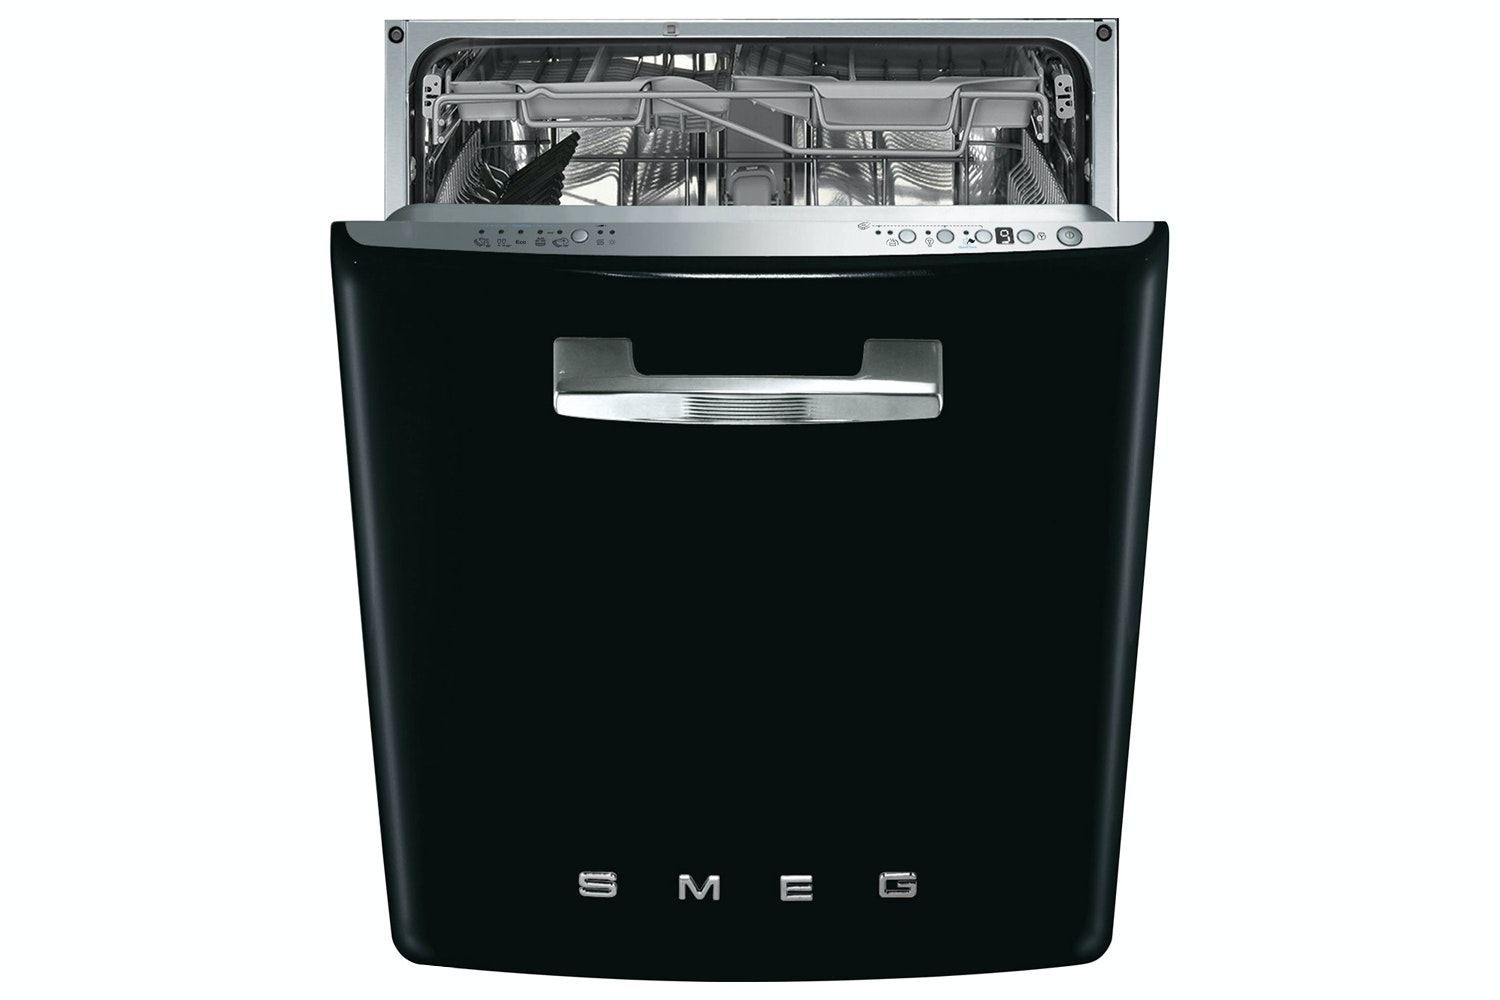 Smeg Retro Fully Integrated Dishwasher | 13 Place | DI6FABBL | Black